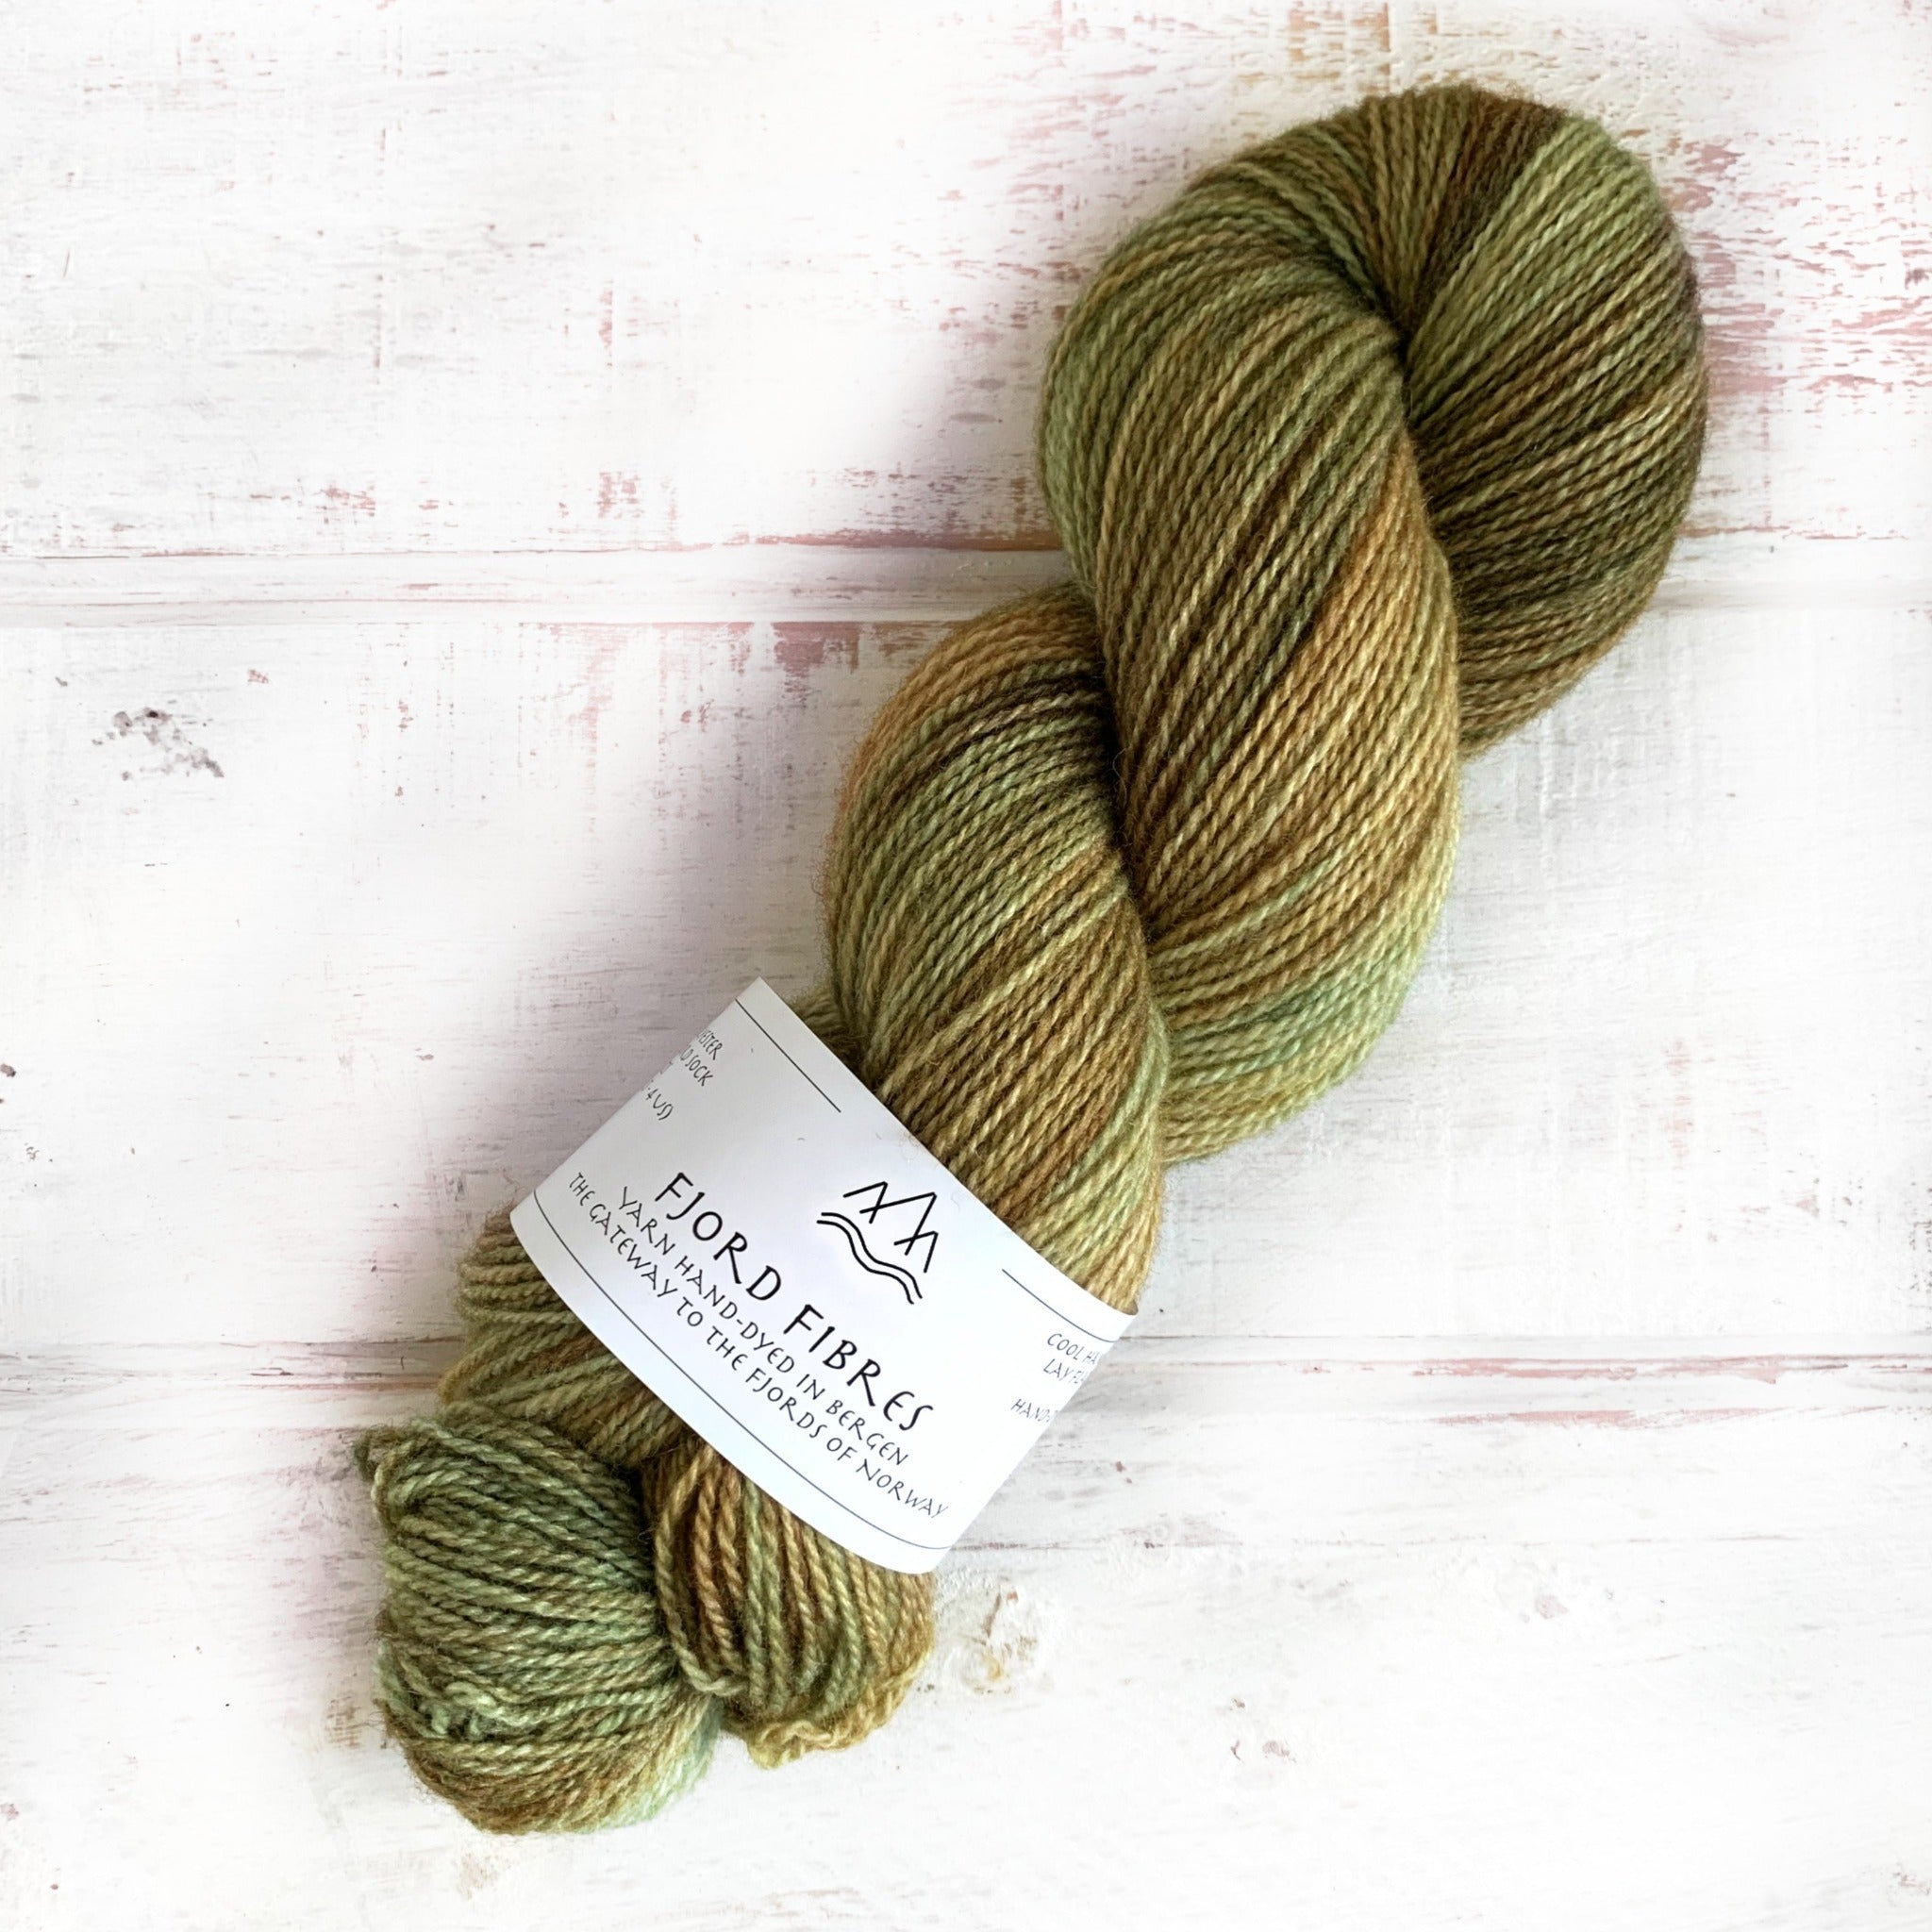 Woodland Grove - Trollfjord sock - Hand Dyed Yarn - Variegated Yarn